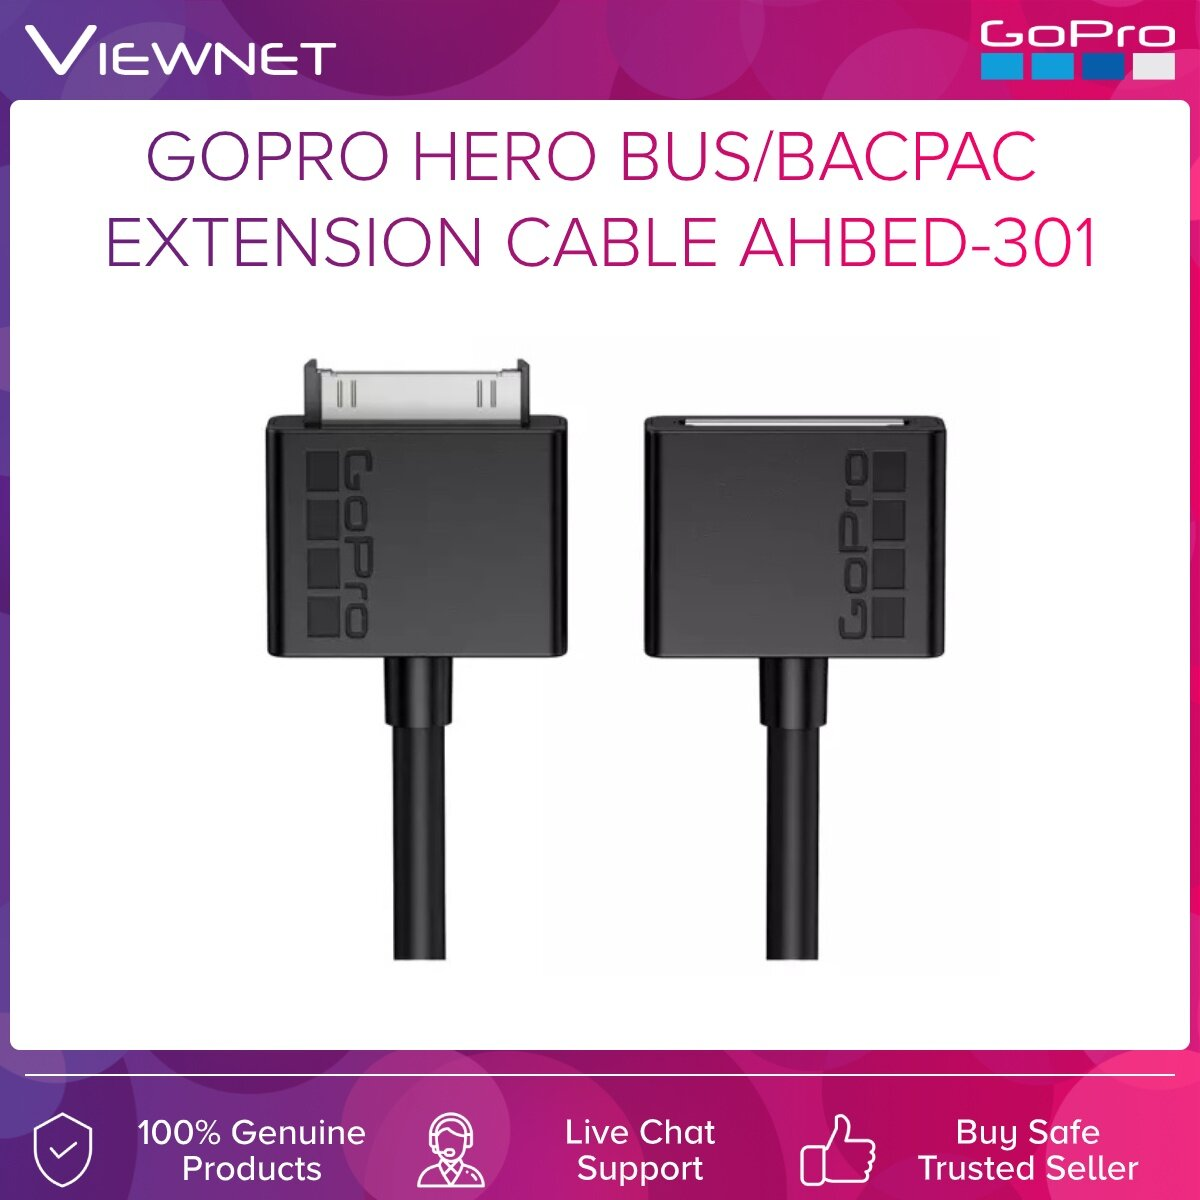 GOPRO HERO BUS / BacPac EXTENSION CABLE (AHBED-301)